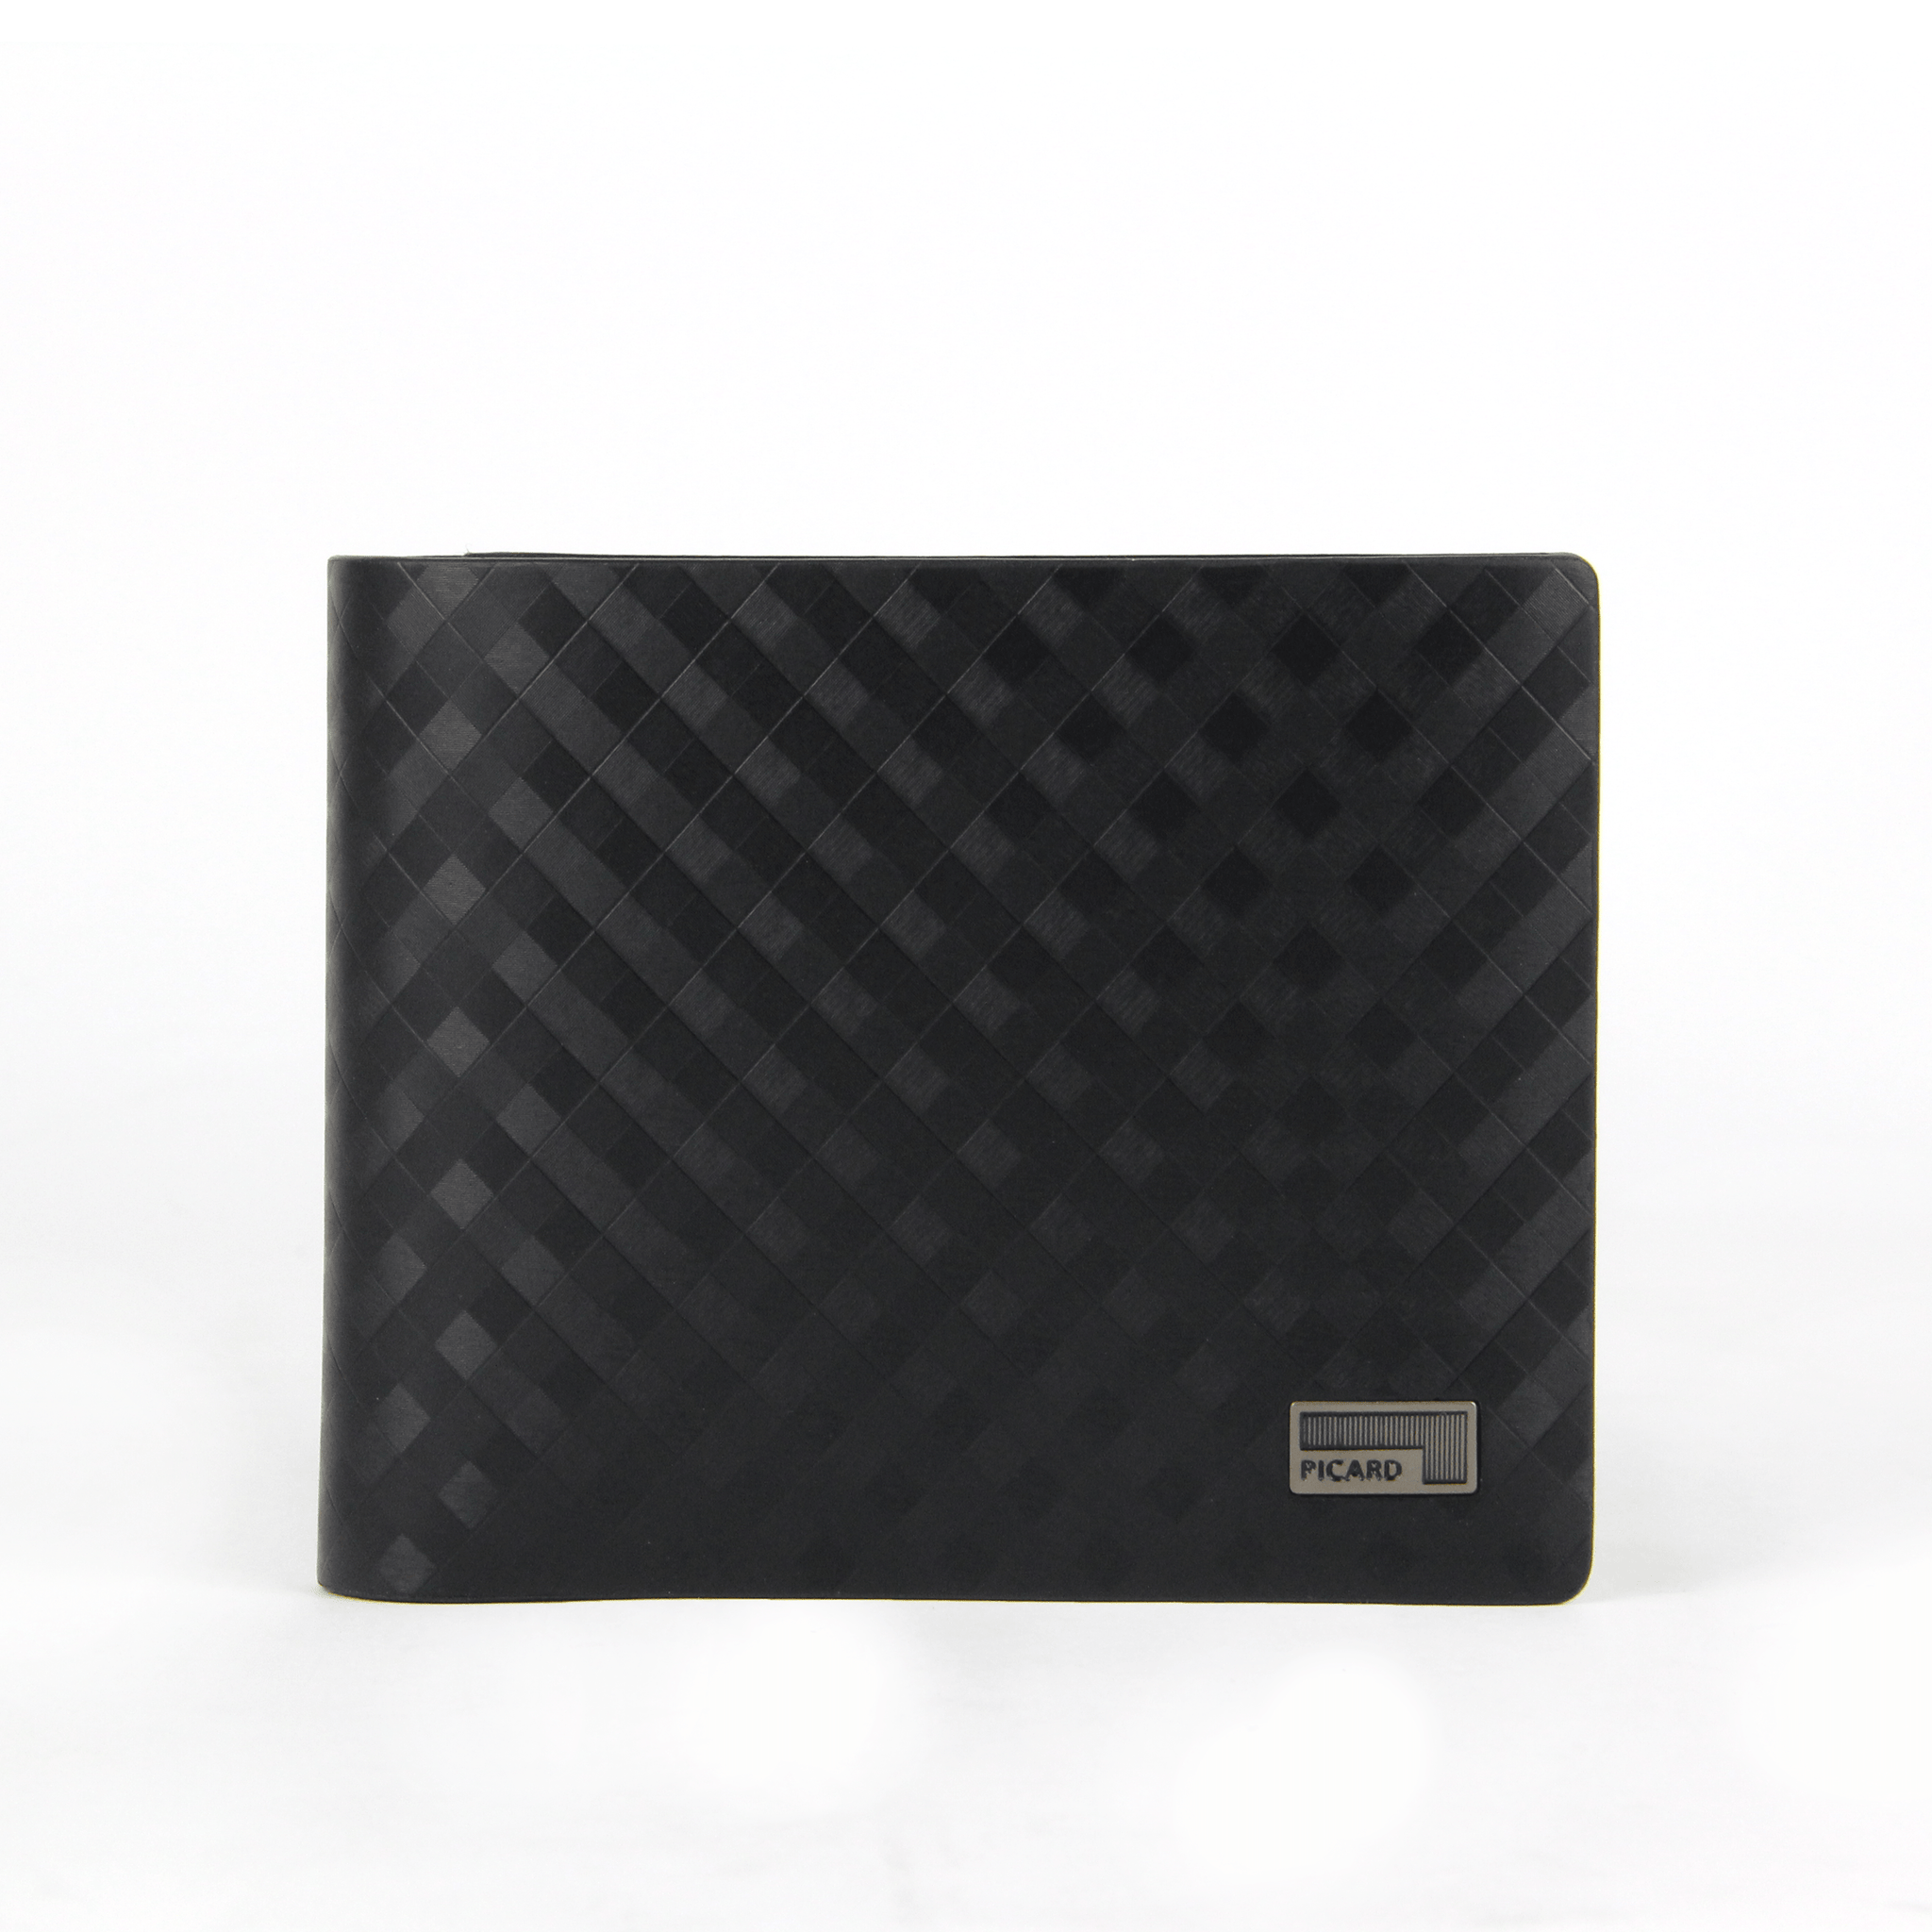 Picard Checker Flap Wallet 007852